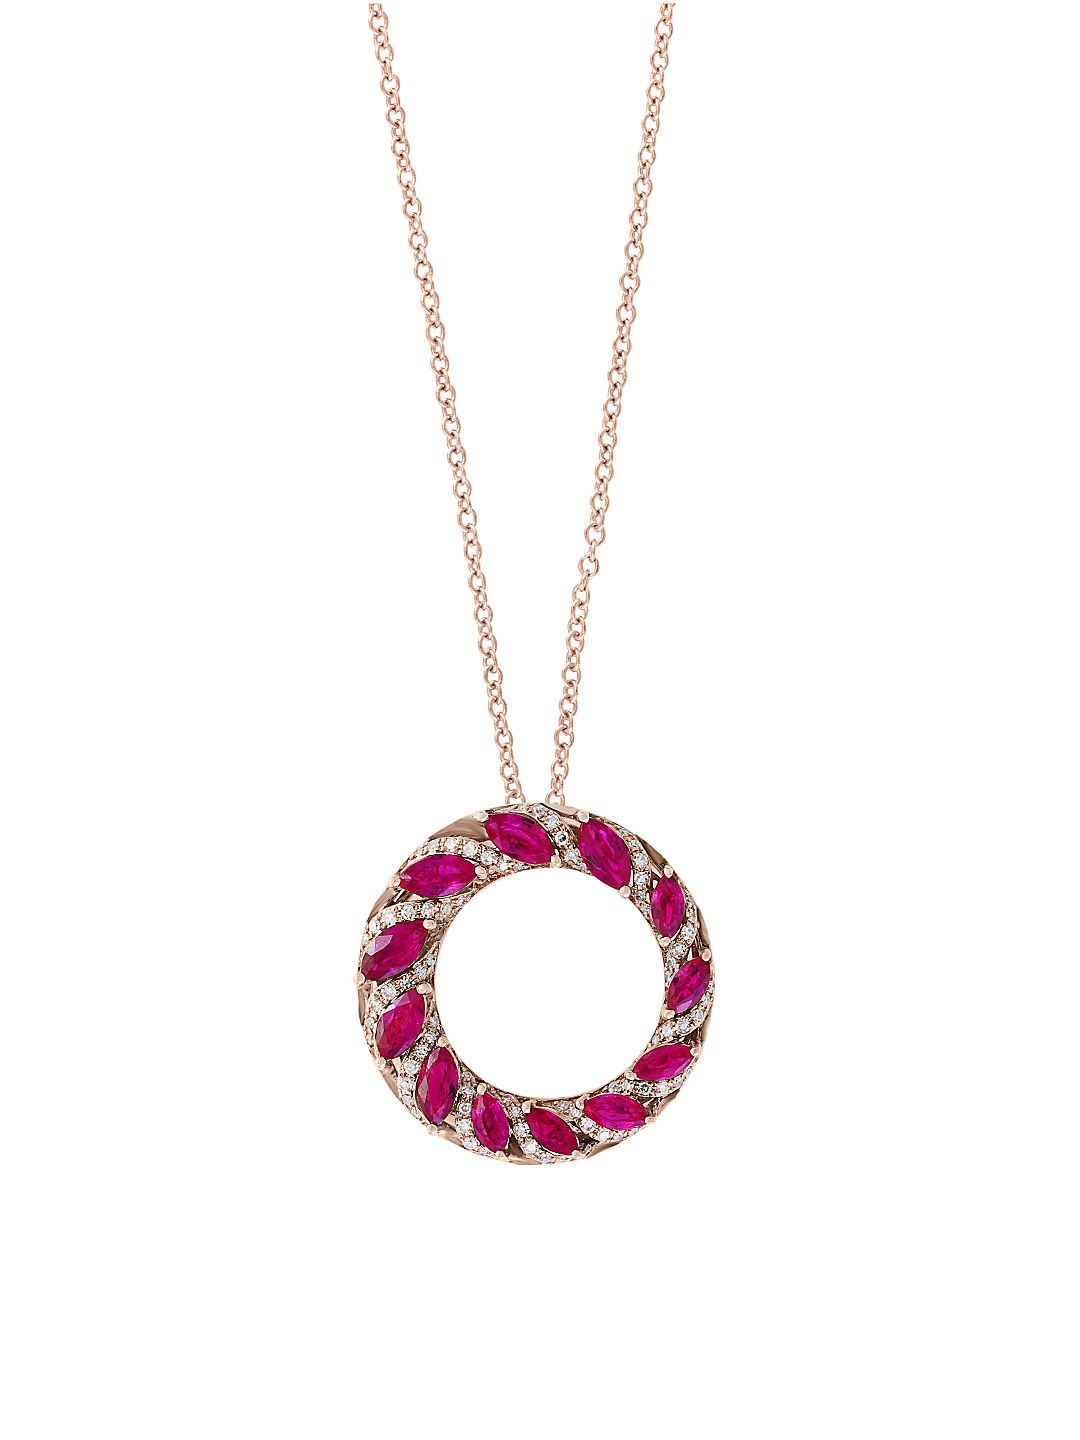 Amoré Diamond, Natural Ruby and 14K Rose Gold Pendant Necklace